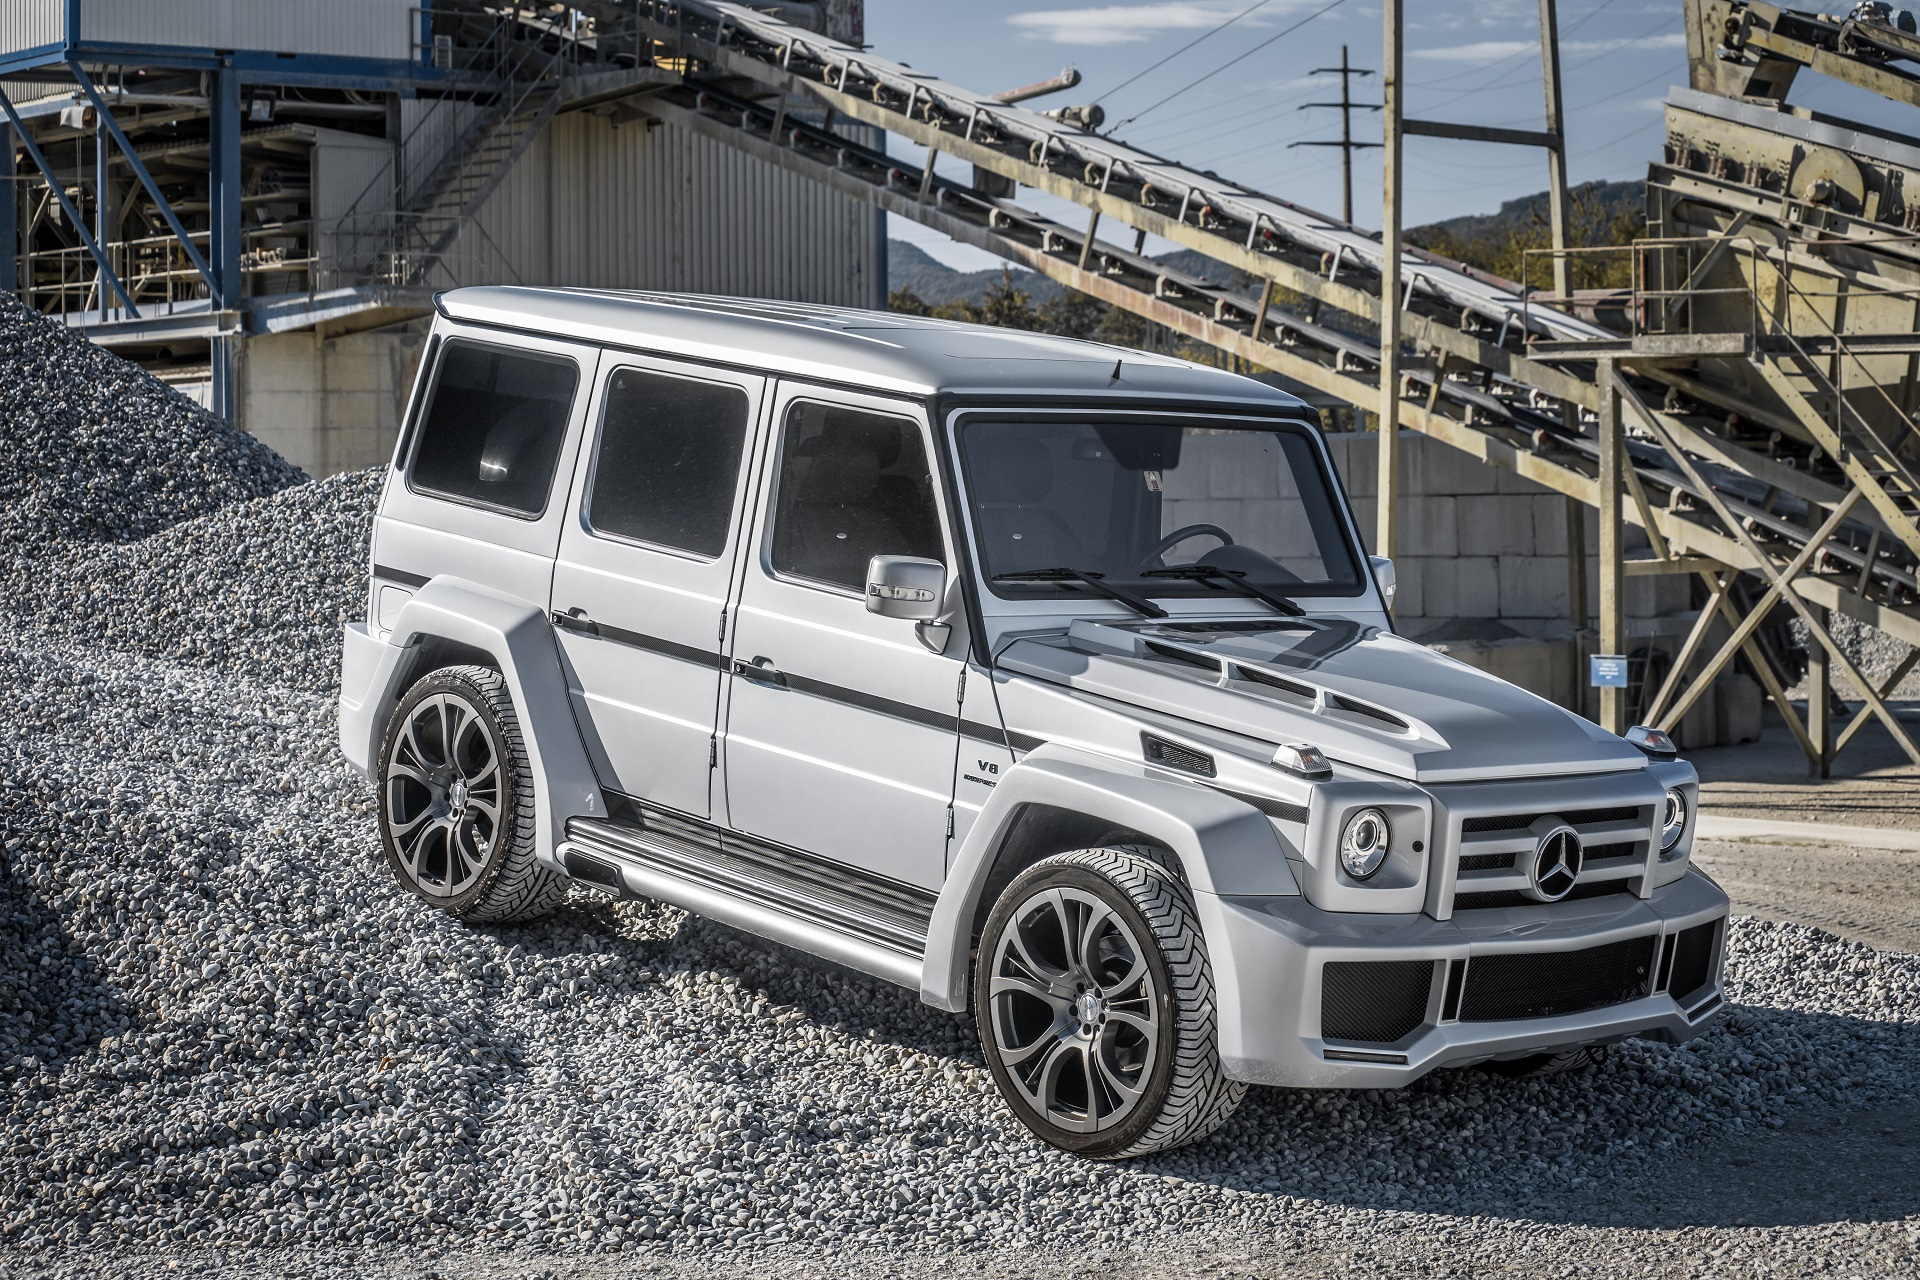 Mercedes Benz G Klasse Fab Design